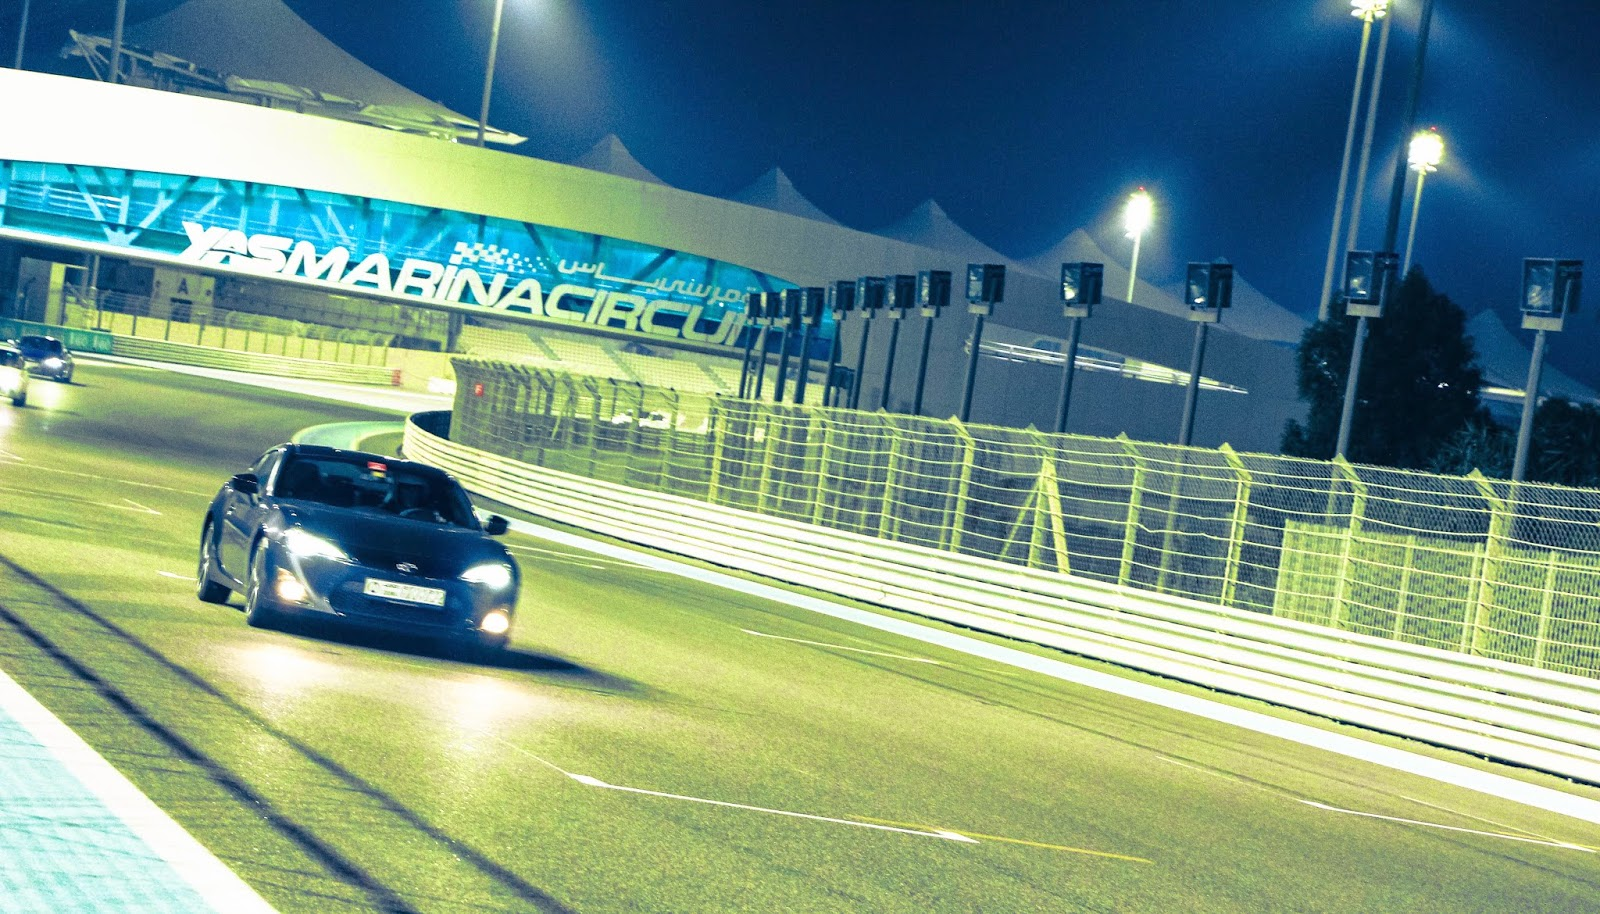 Toyota 86 at Yas Marina Circuit